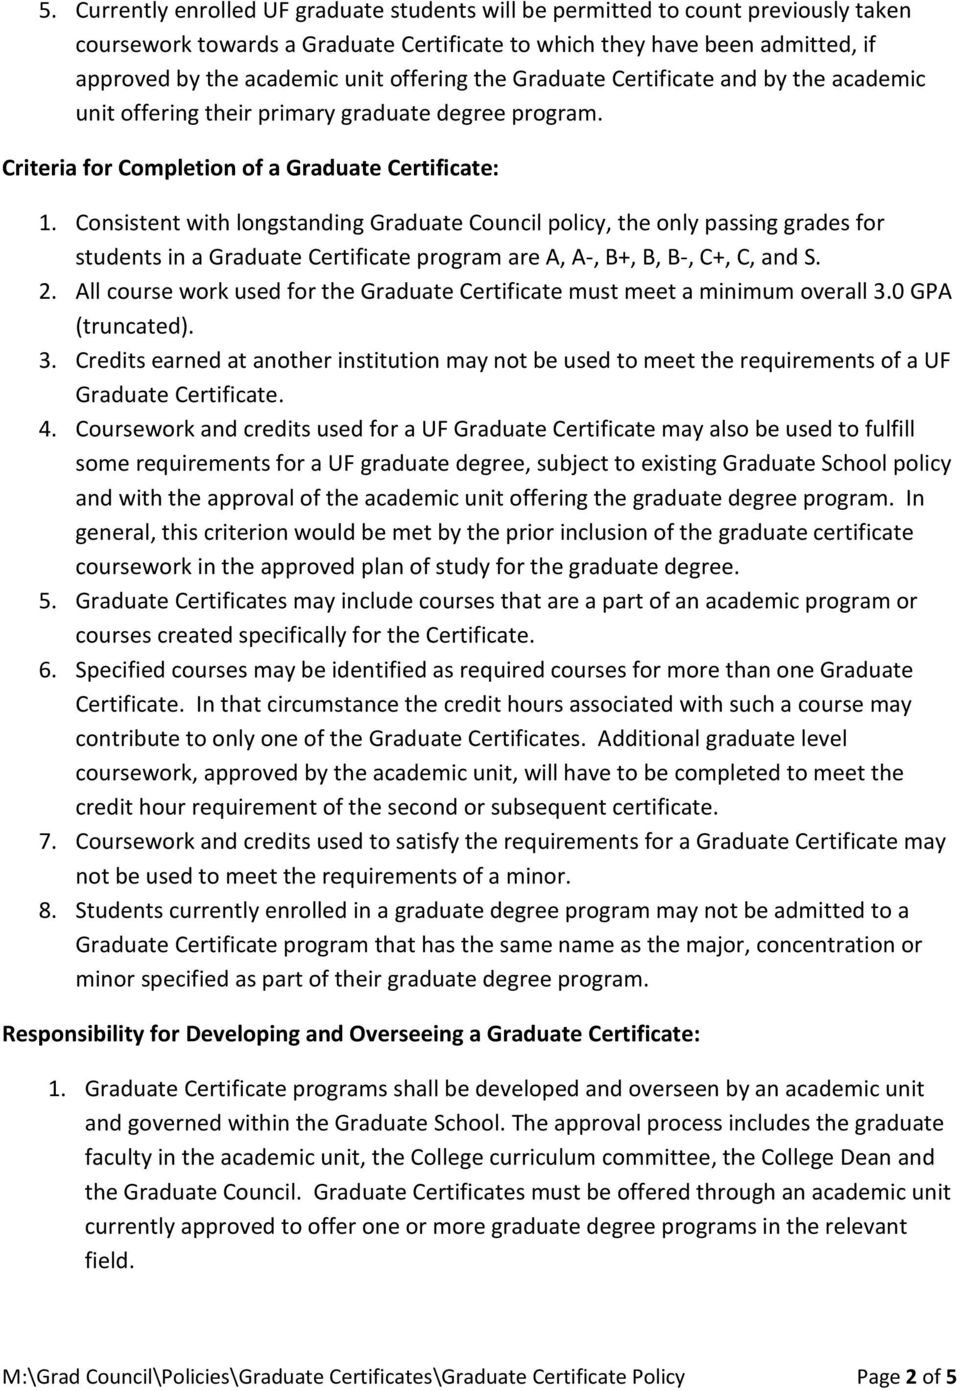 Consistent with longstanding Graduate Council policy, the only passing grades for students in a Graduate Certificate program are A, A-, B+, B, B-, C+, C, and S. 2.